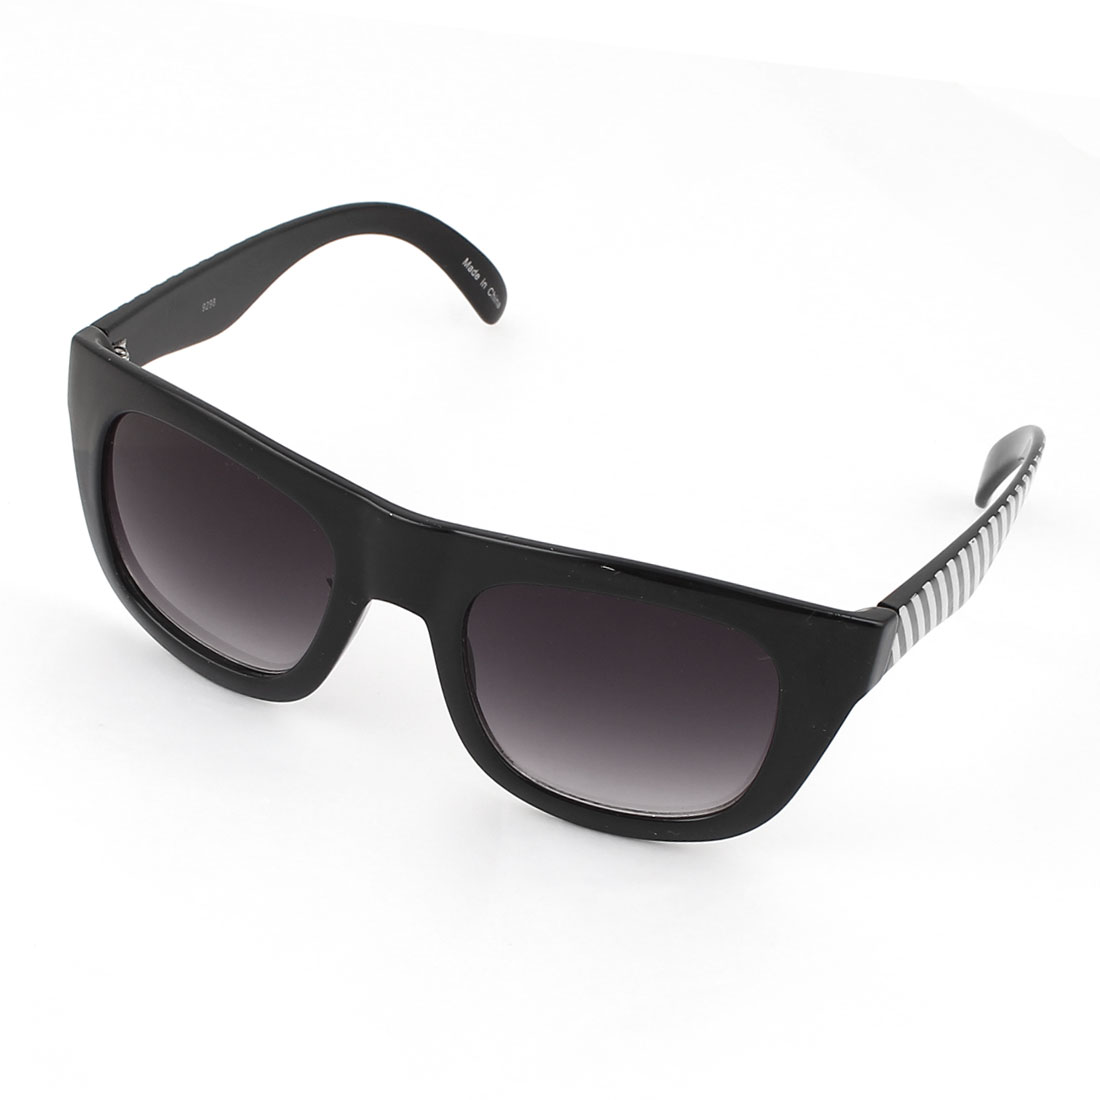 Man Black Plastic Zebra Design Arm Full Rim Square Lens Sunglasses